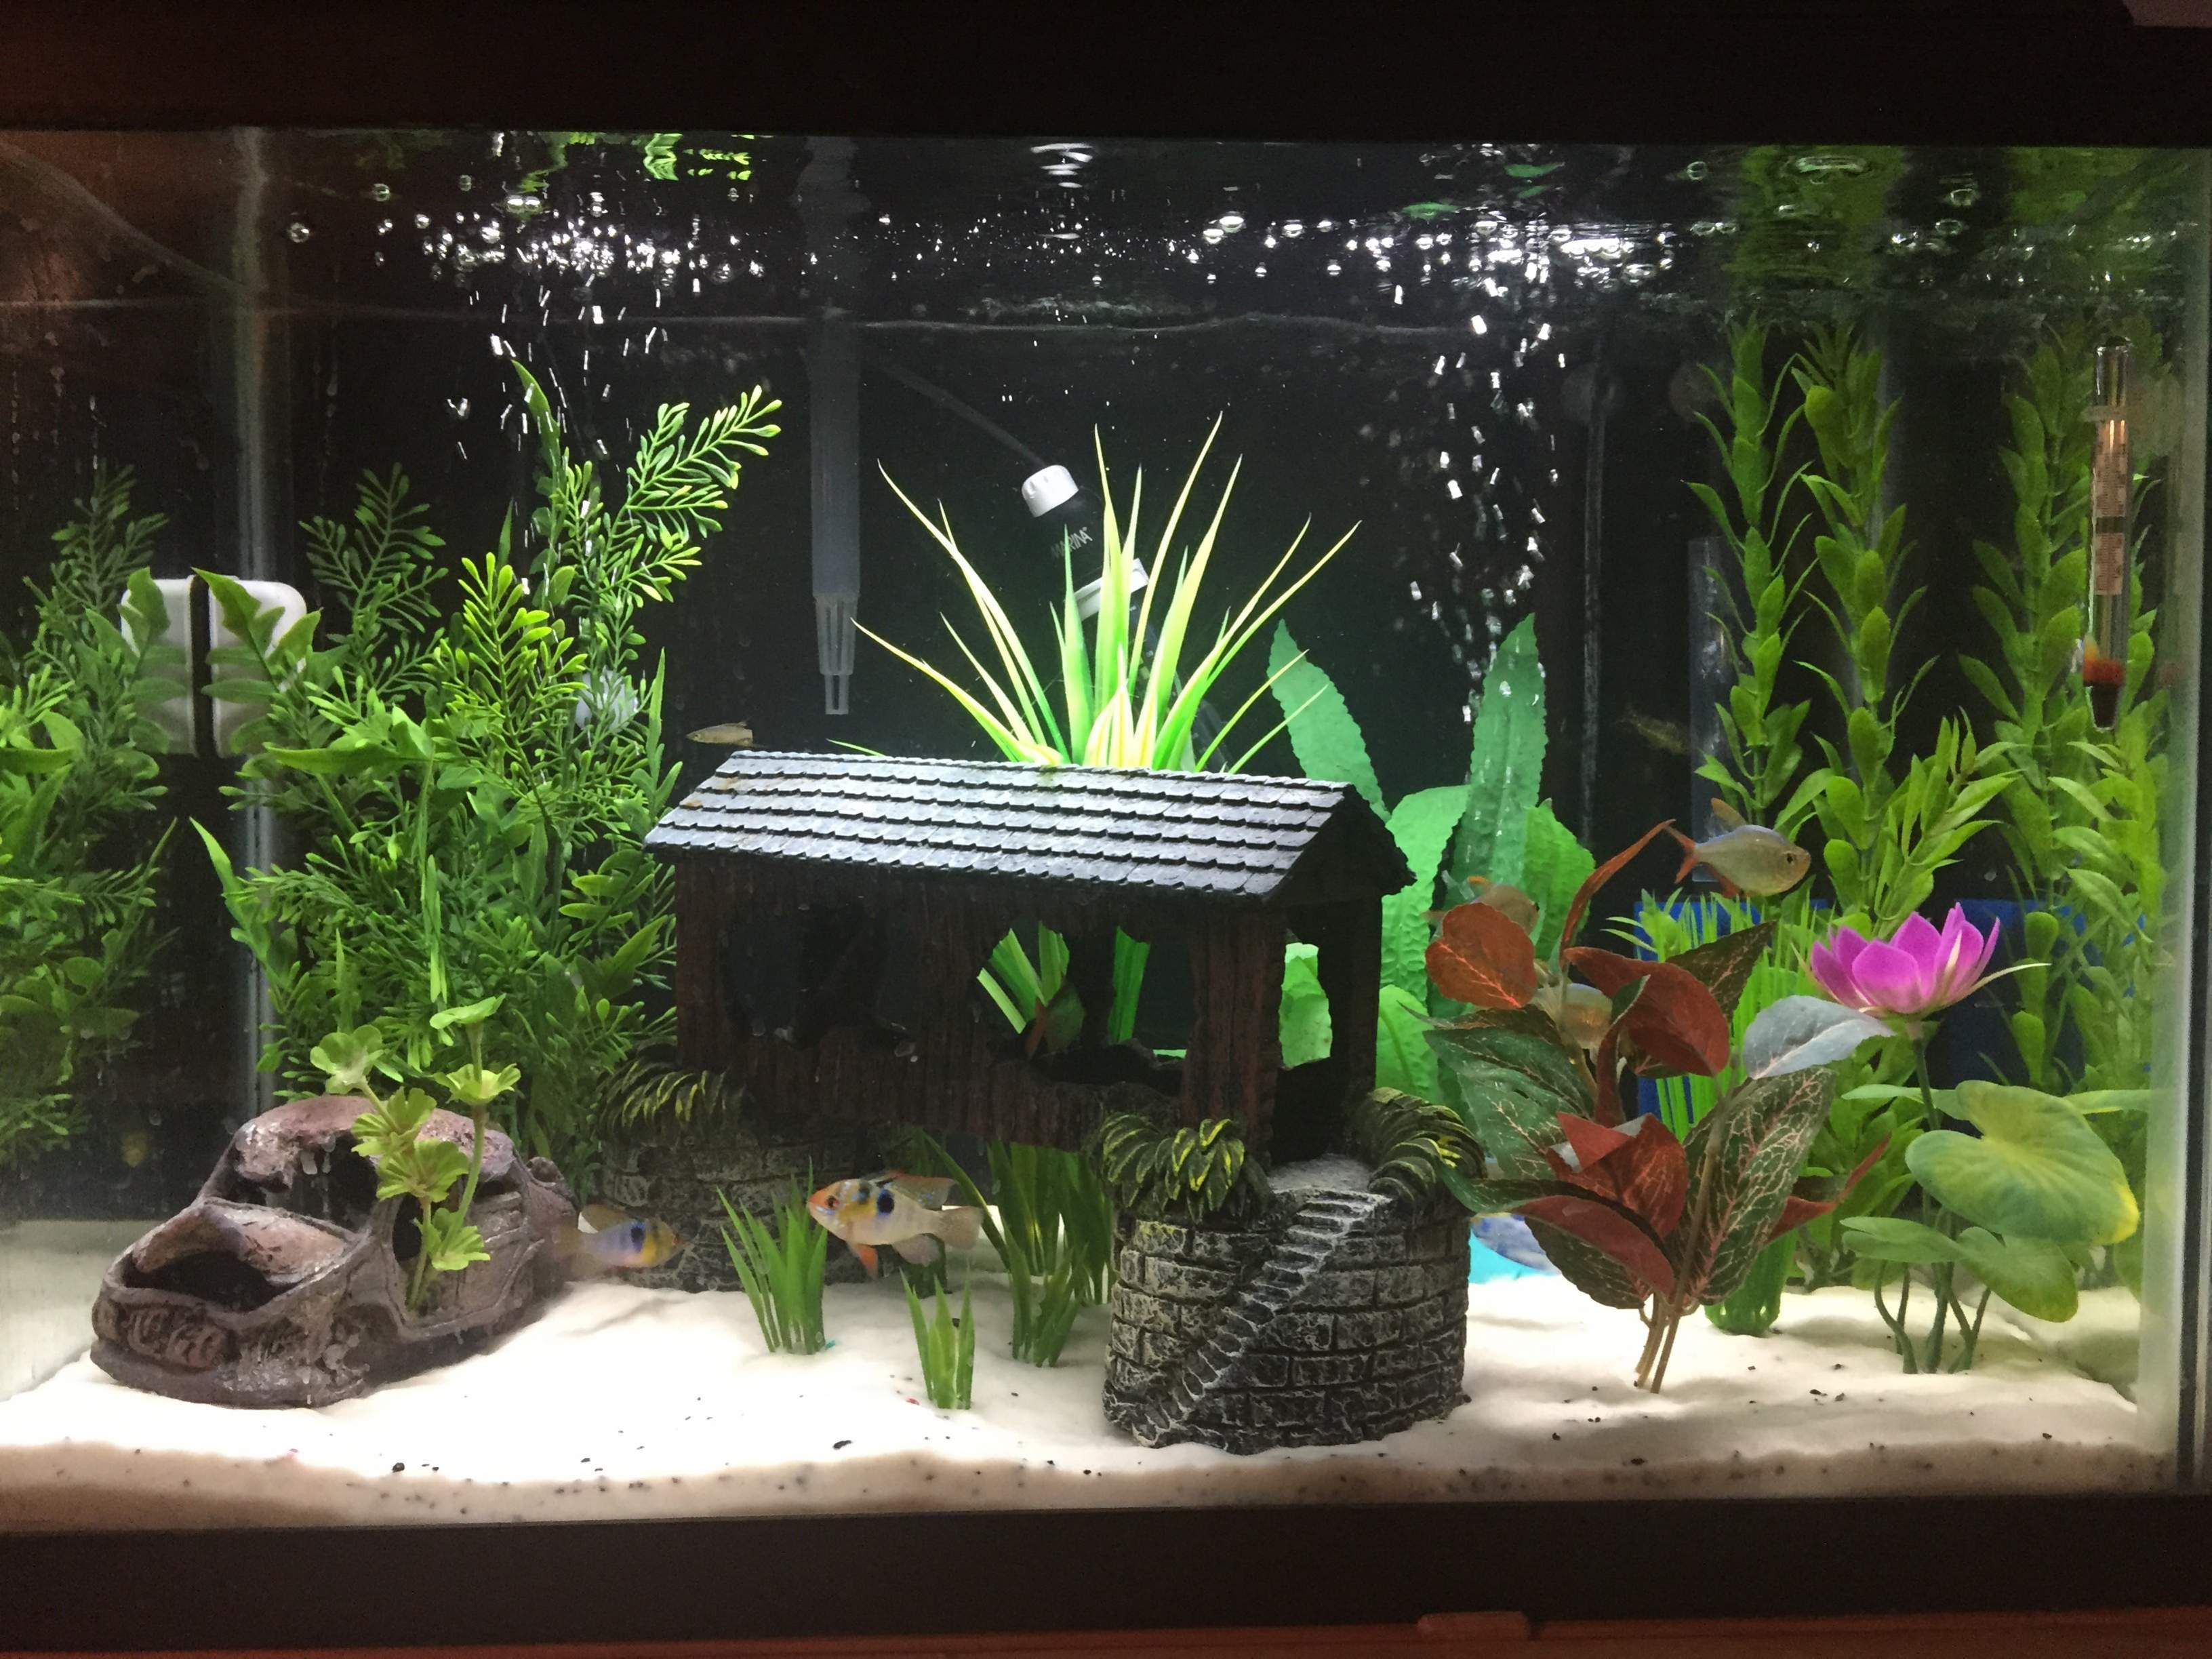 Aquarium Decoration Design : Well planted gallon aquariums google search … pinteres…